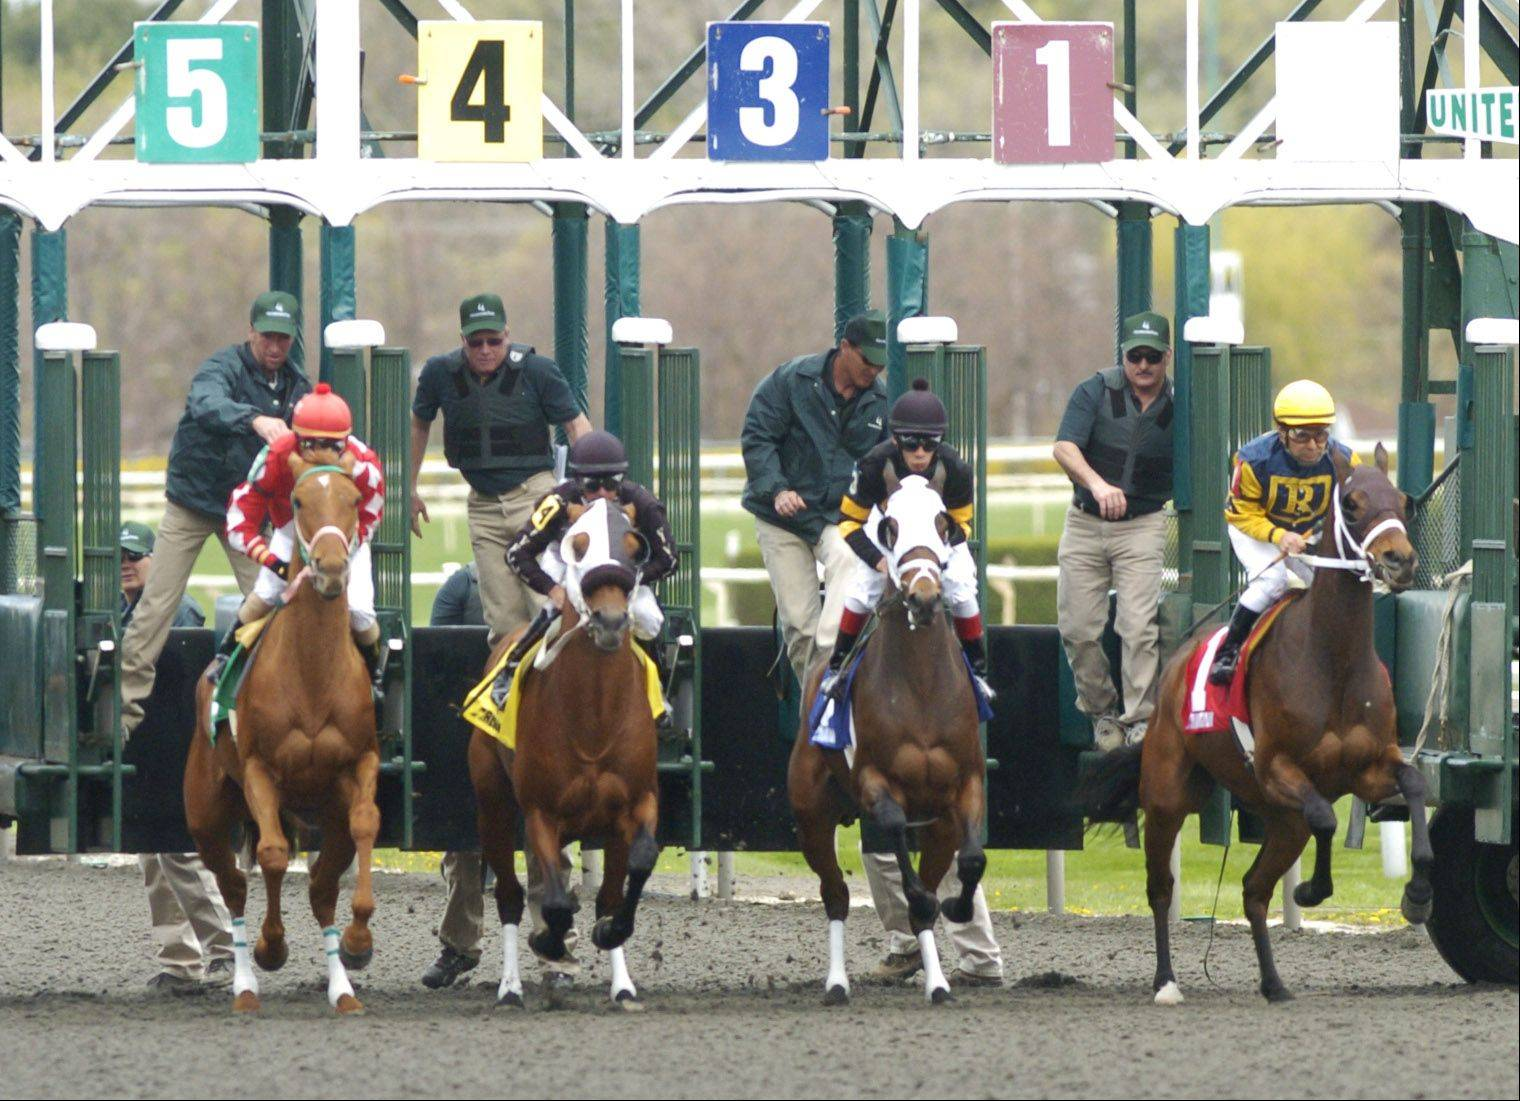 Horses leave the starting gate in the first race on Opening Day in 2011 at Arlington Park.